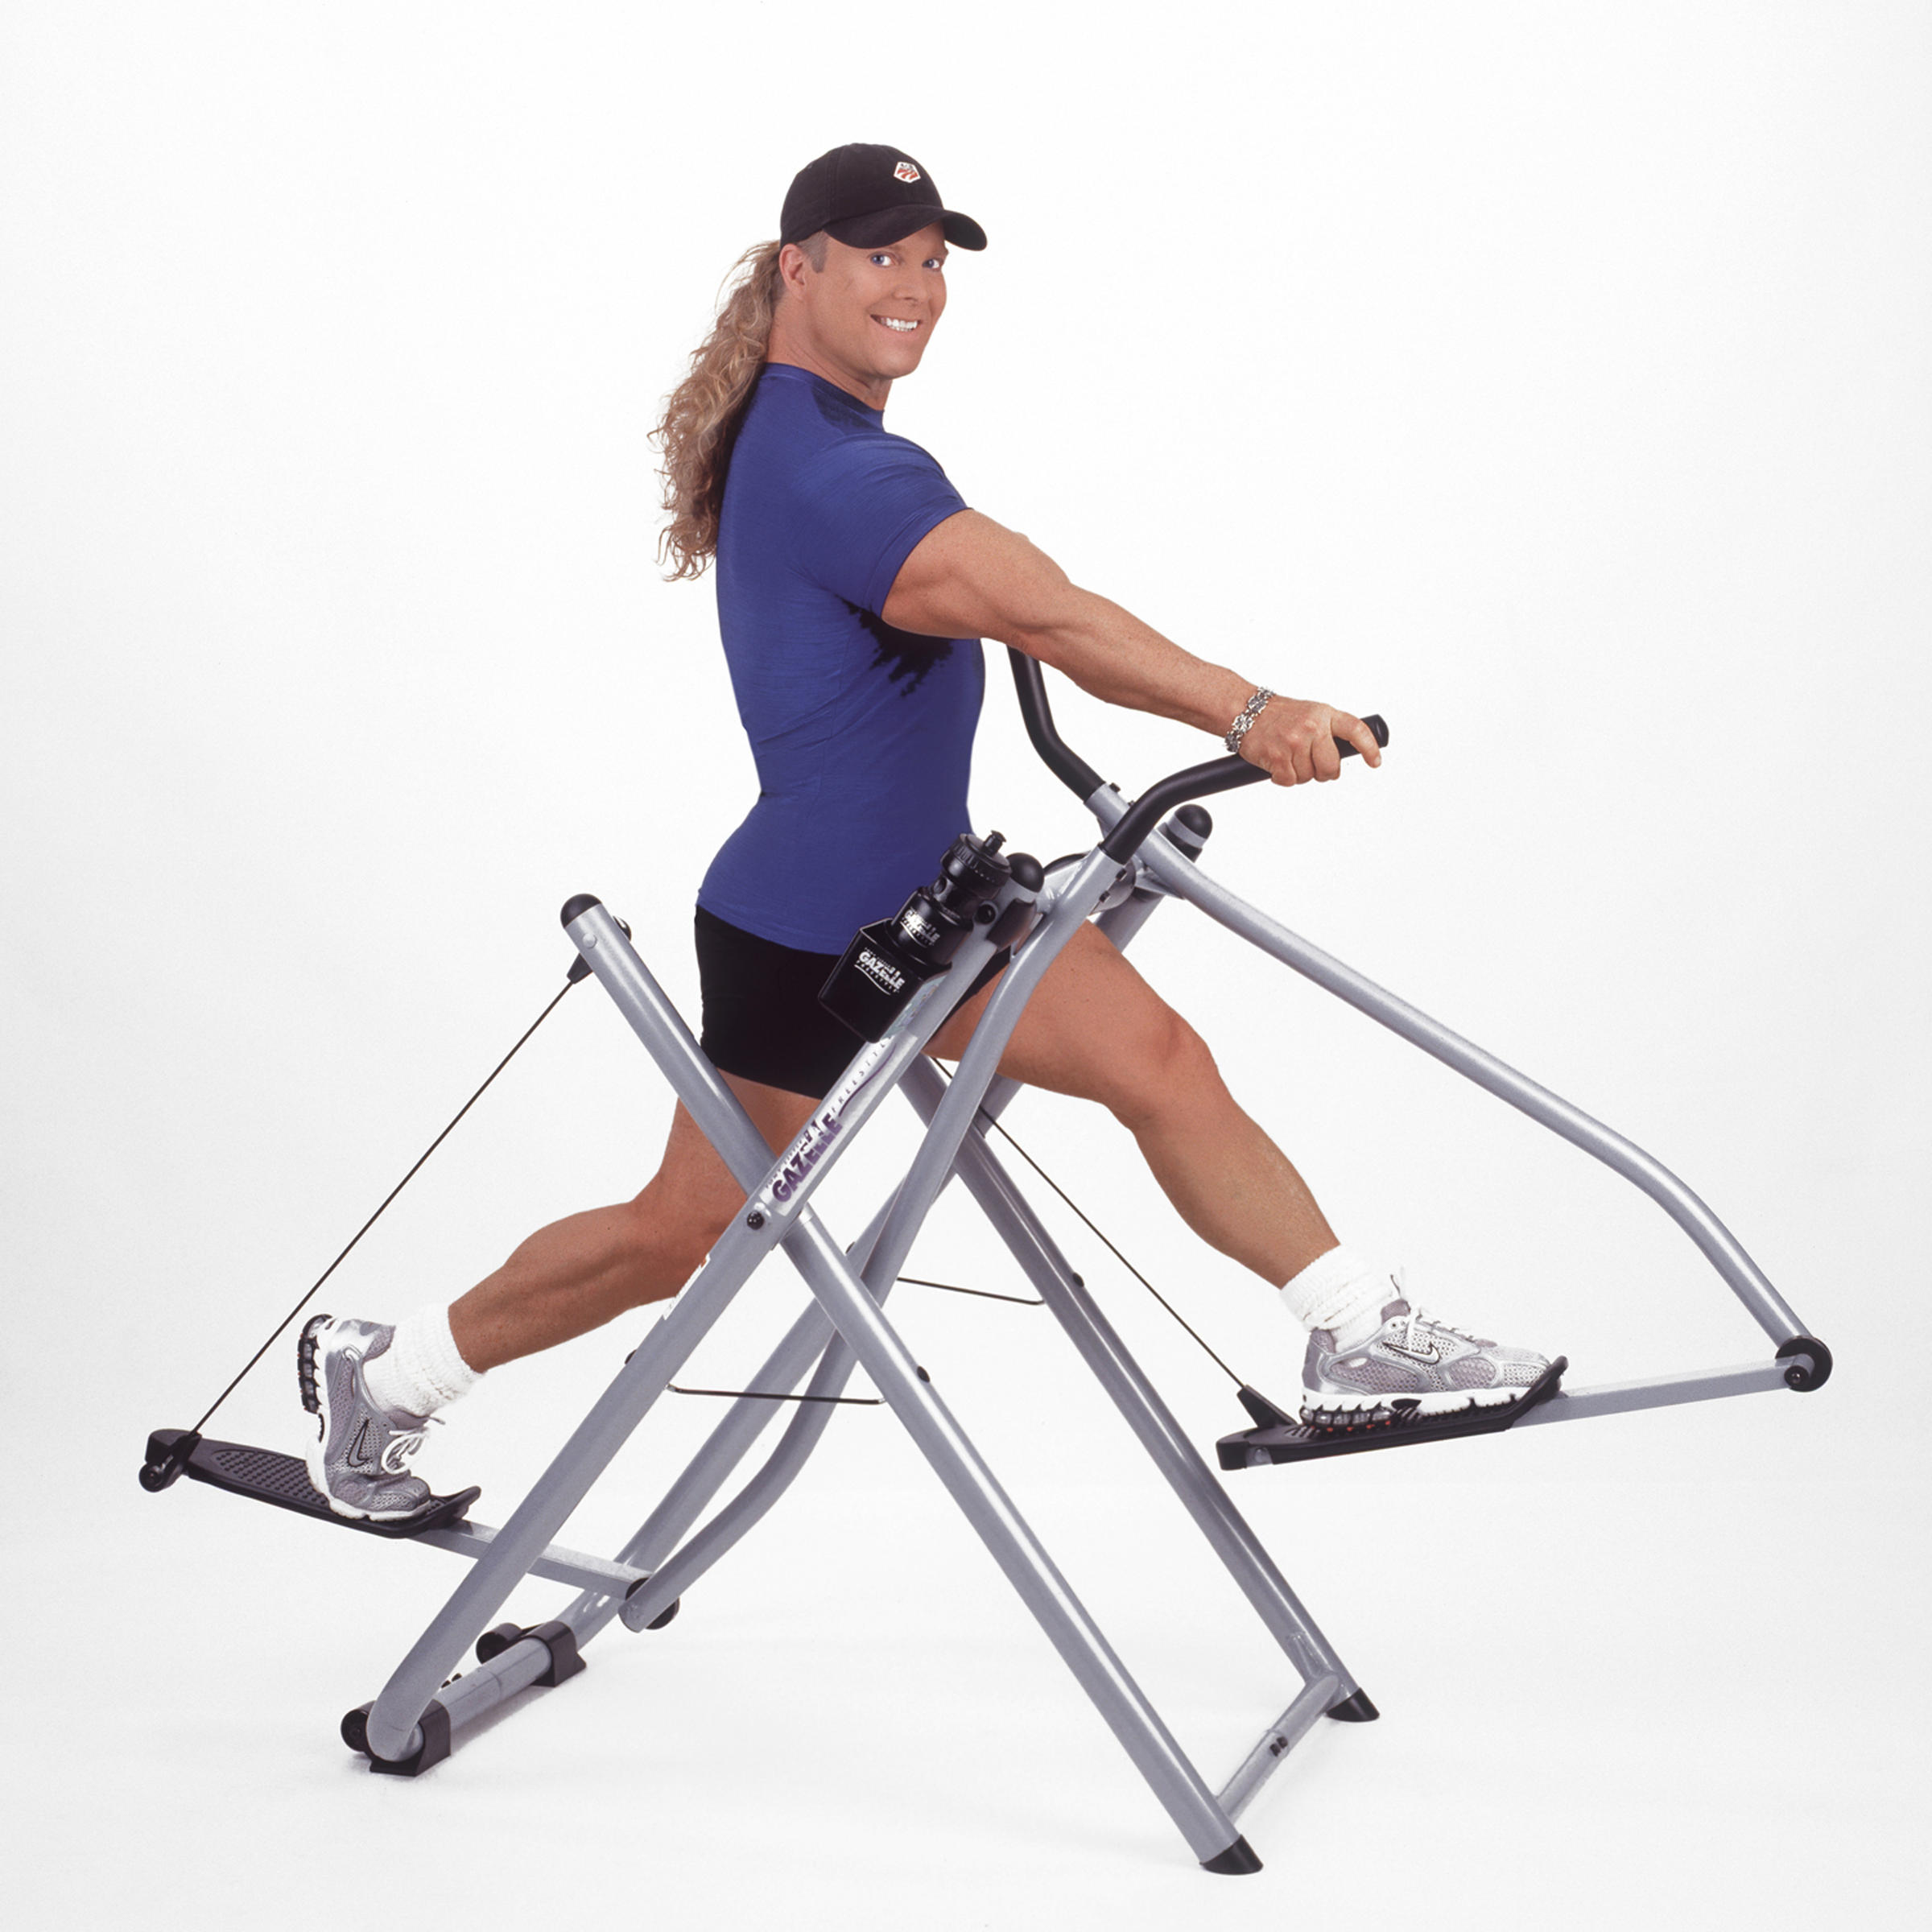 Image result for Three different types of Tony Little Gazelle Exerciser Machines